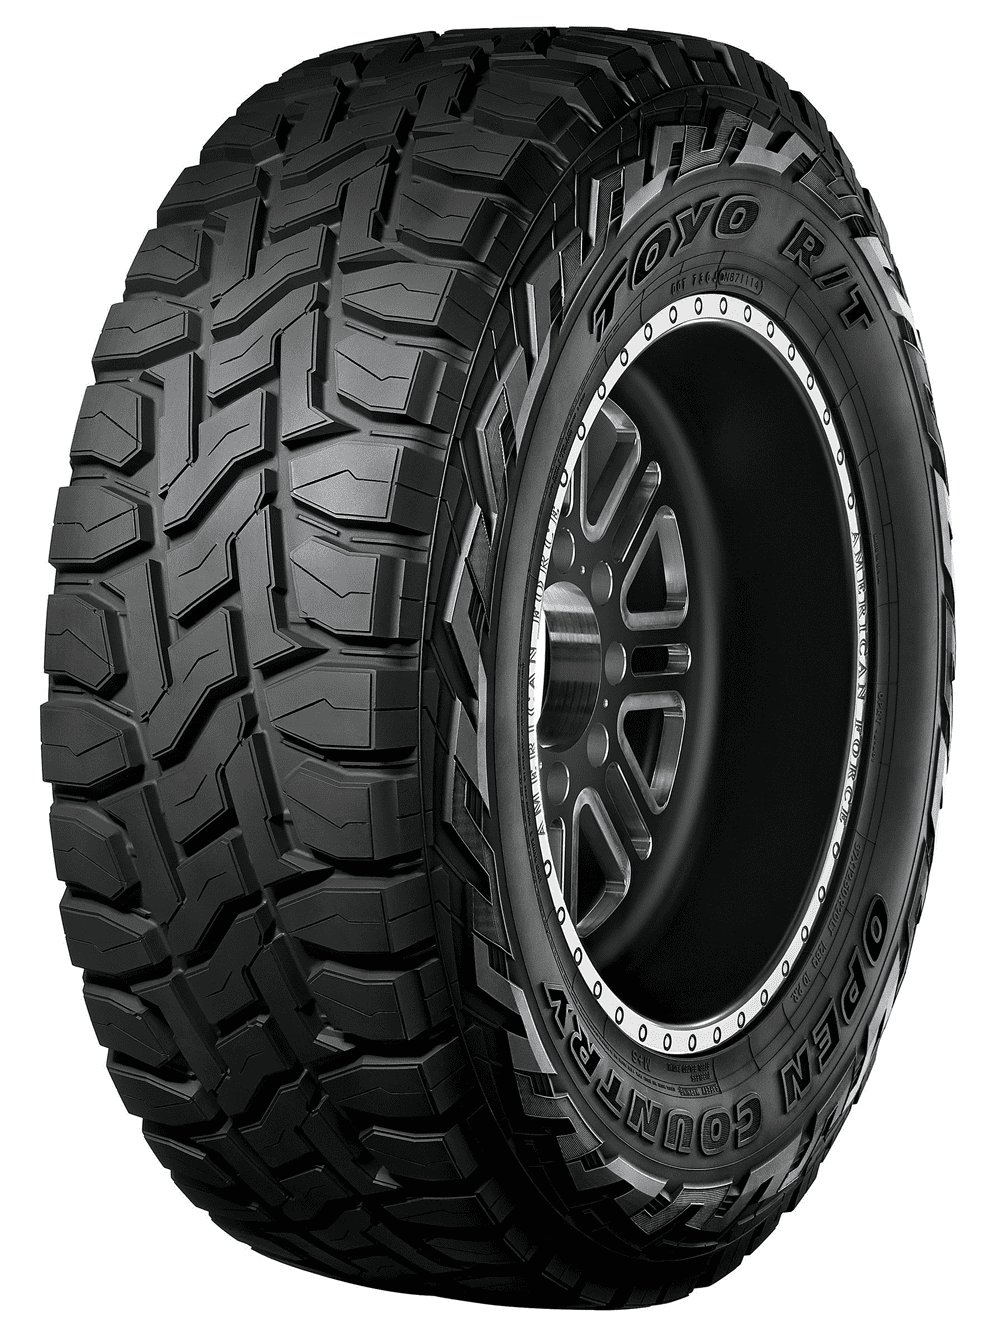 Toyo Open Country R/T off-road tire